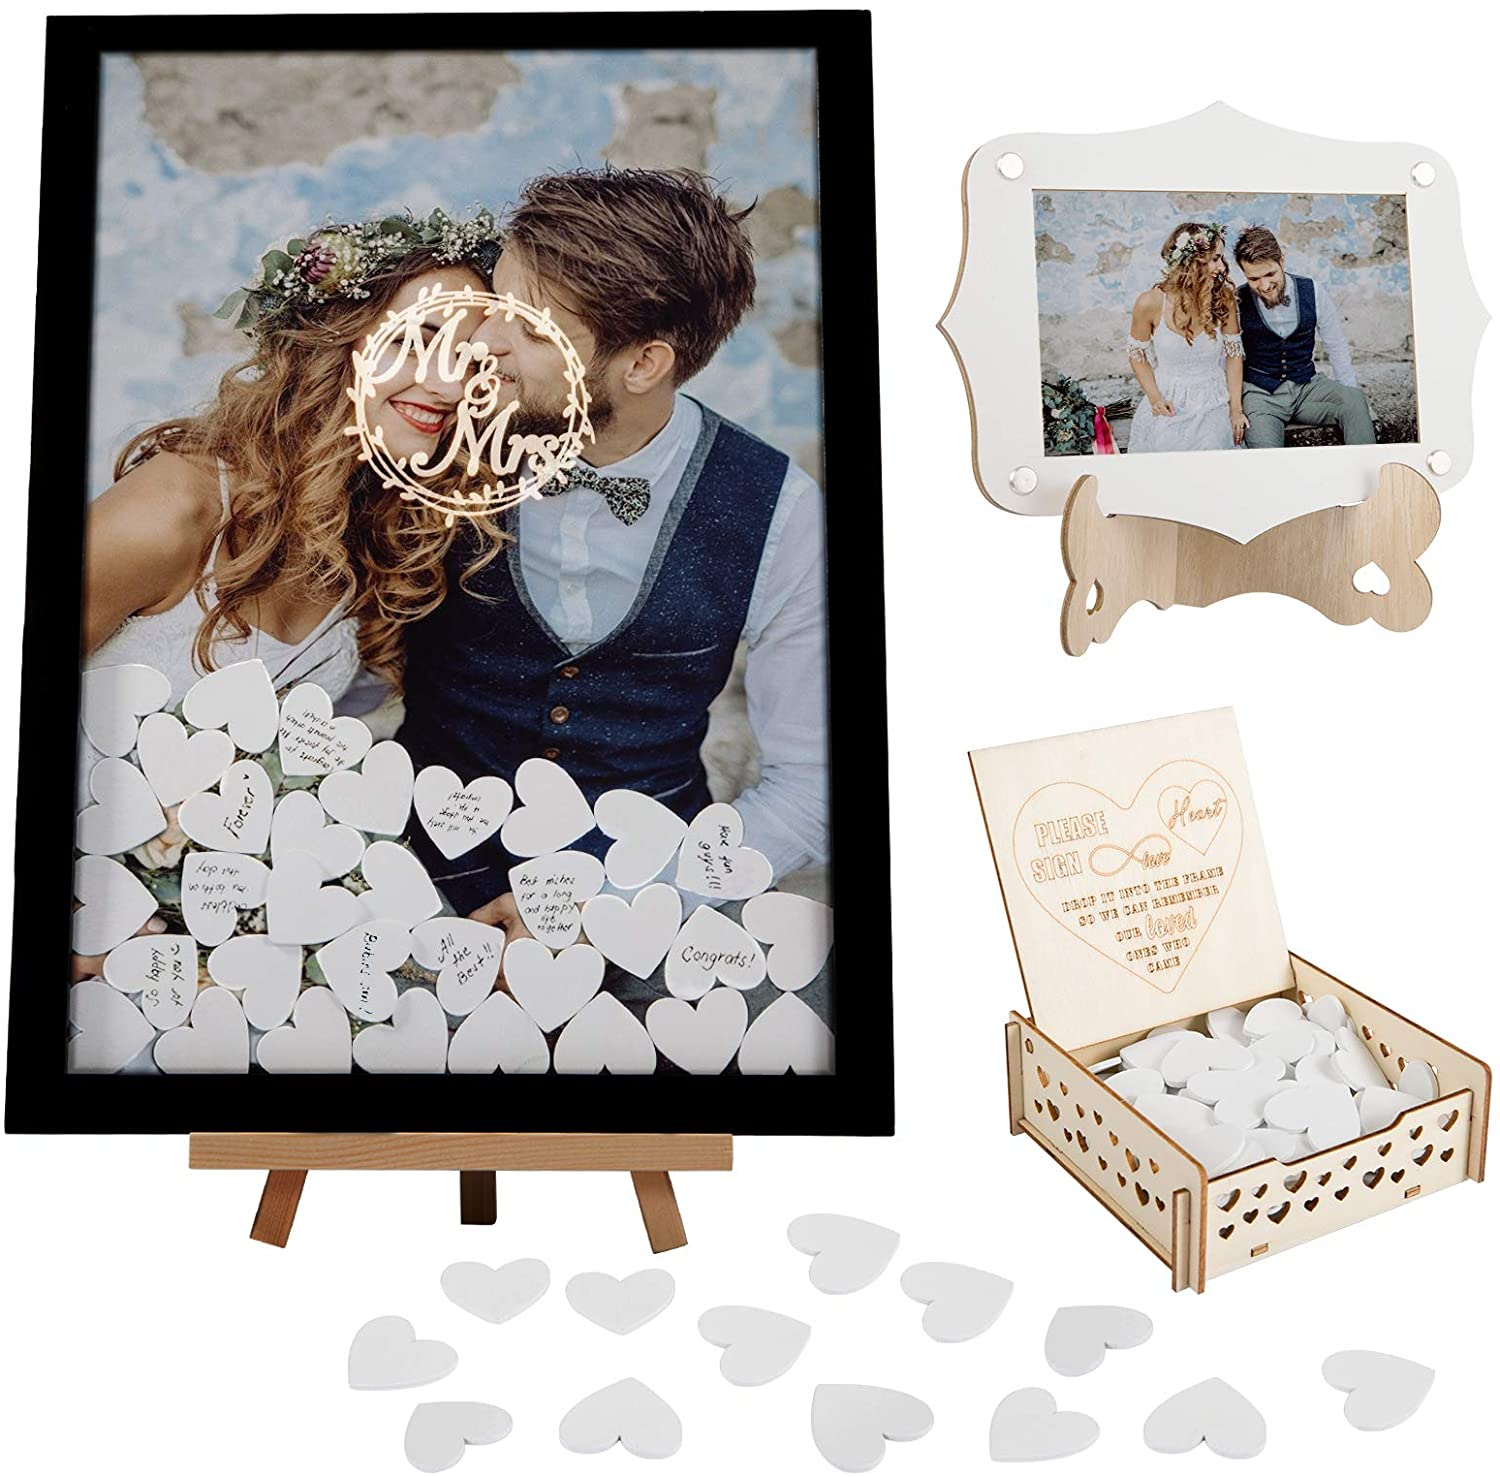 Wooden Wedding Guest Book Alternative Kits- 2pcs Wooden Picture Frame in 2 Sizes with Display Stands+ 100pcs Blank Hearts with Plywood Box Rustic Wedding Decor for Birthday Party Wedding Anniversary